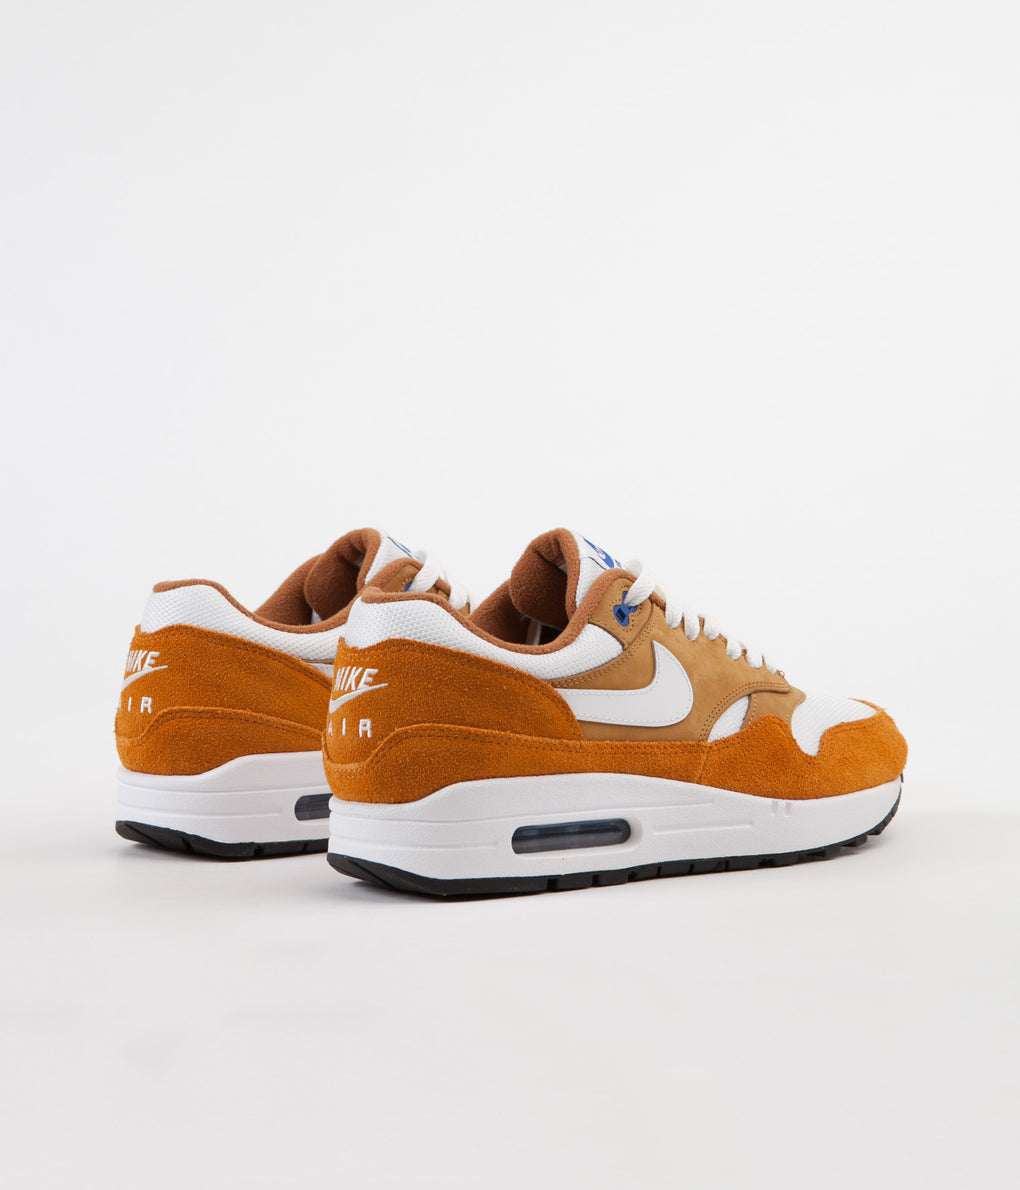 Nike Air Max 1 Premium Retro Shoes - Dark Curry / True White - Sport Blue - Black